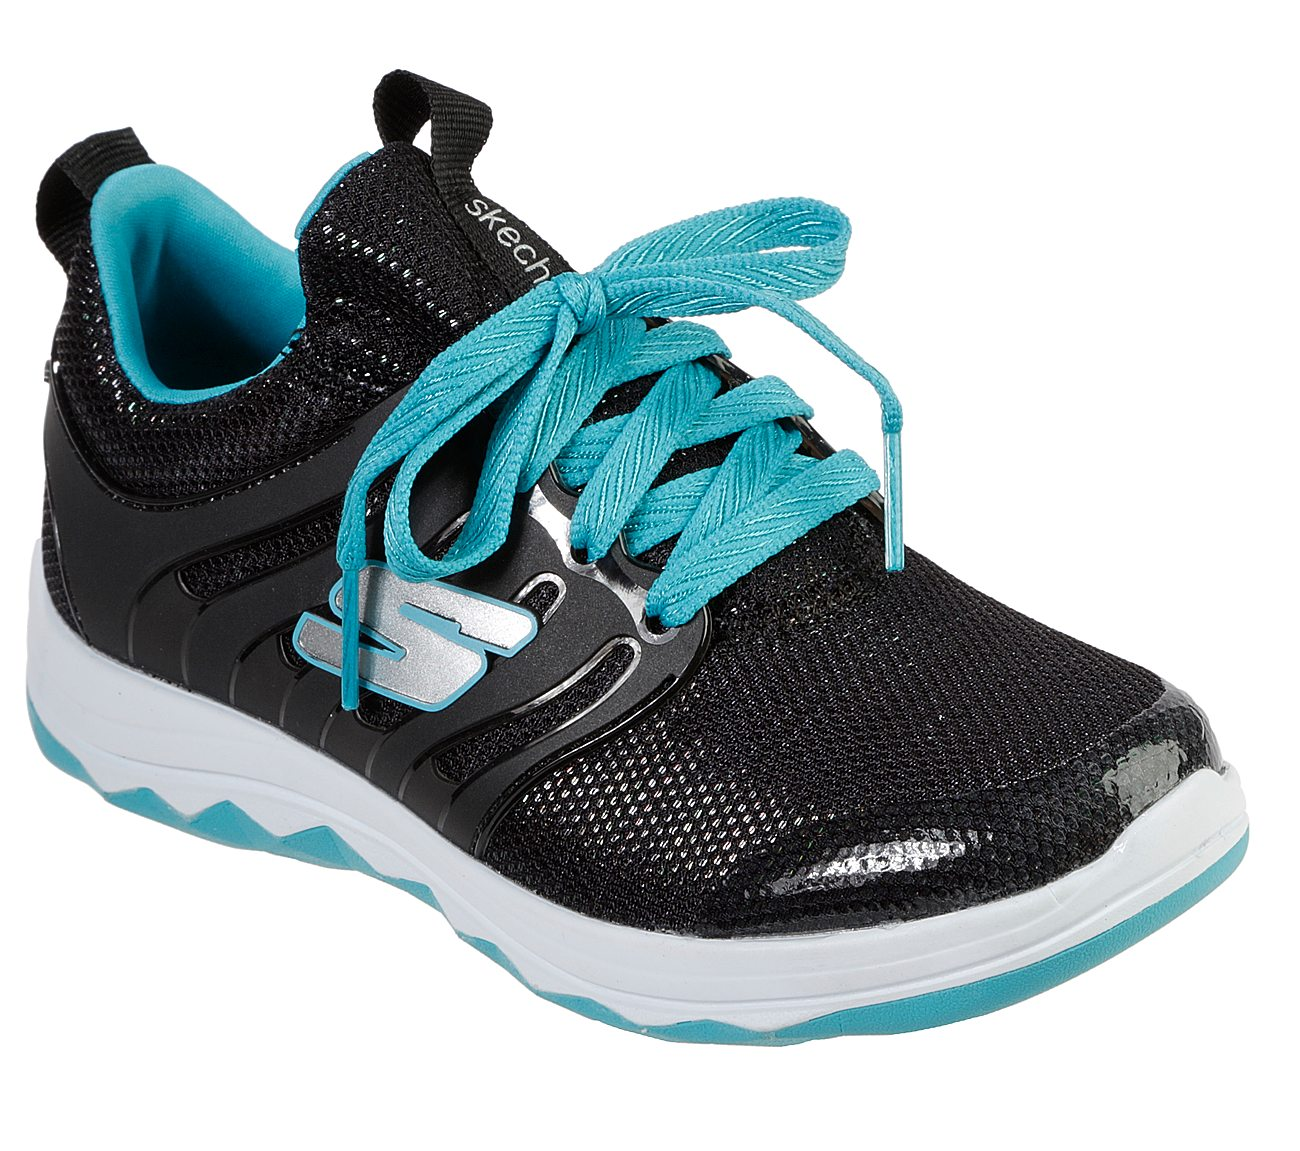 d0787756c52d44 Buy SKECHERS Diamond Runner - Rainbow Dreams Sport Shoes only $47.00